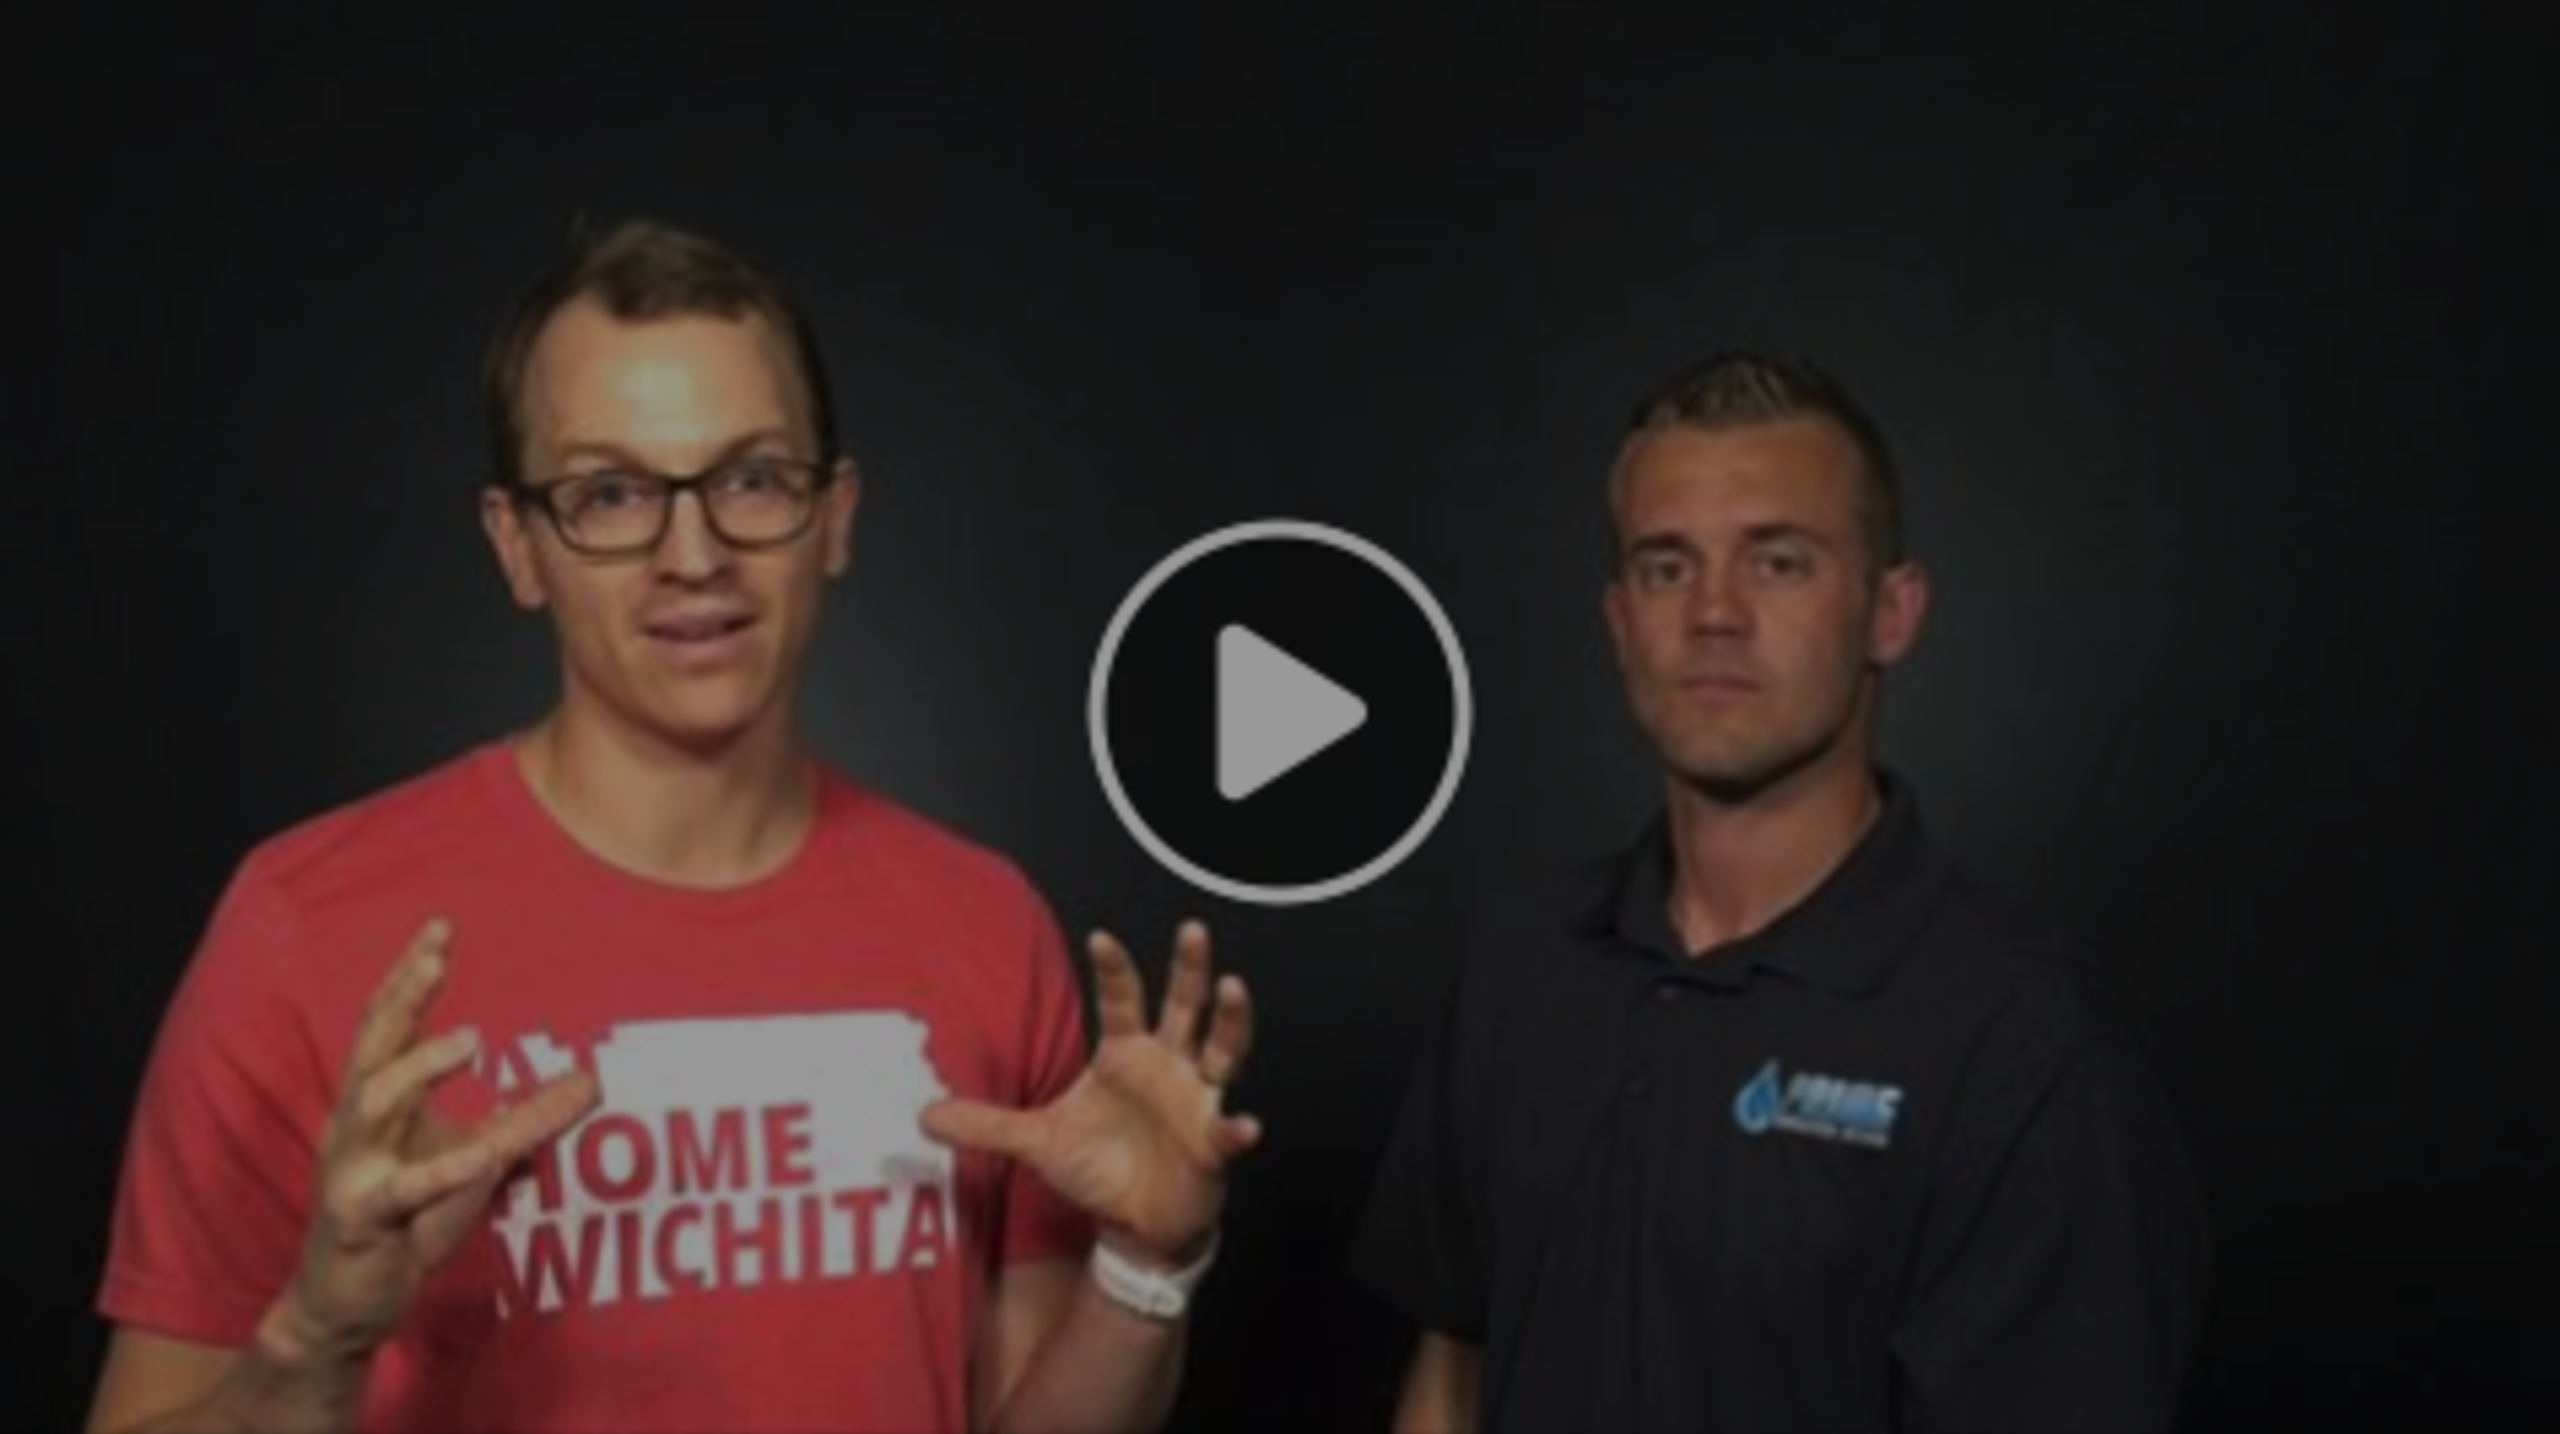 [Video] Get Your Best Lawn Ever & Must-Do Wichita Activities